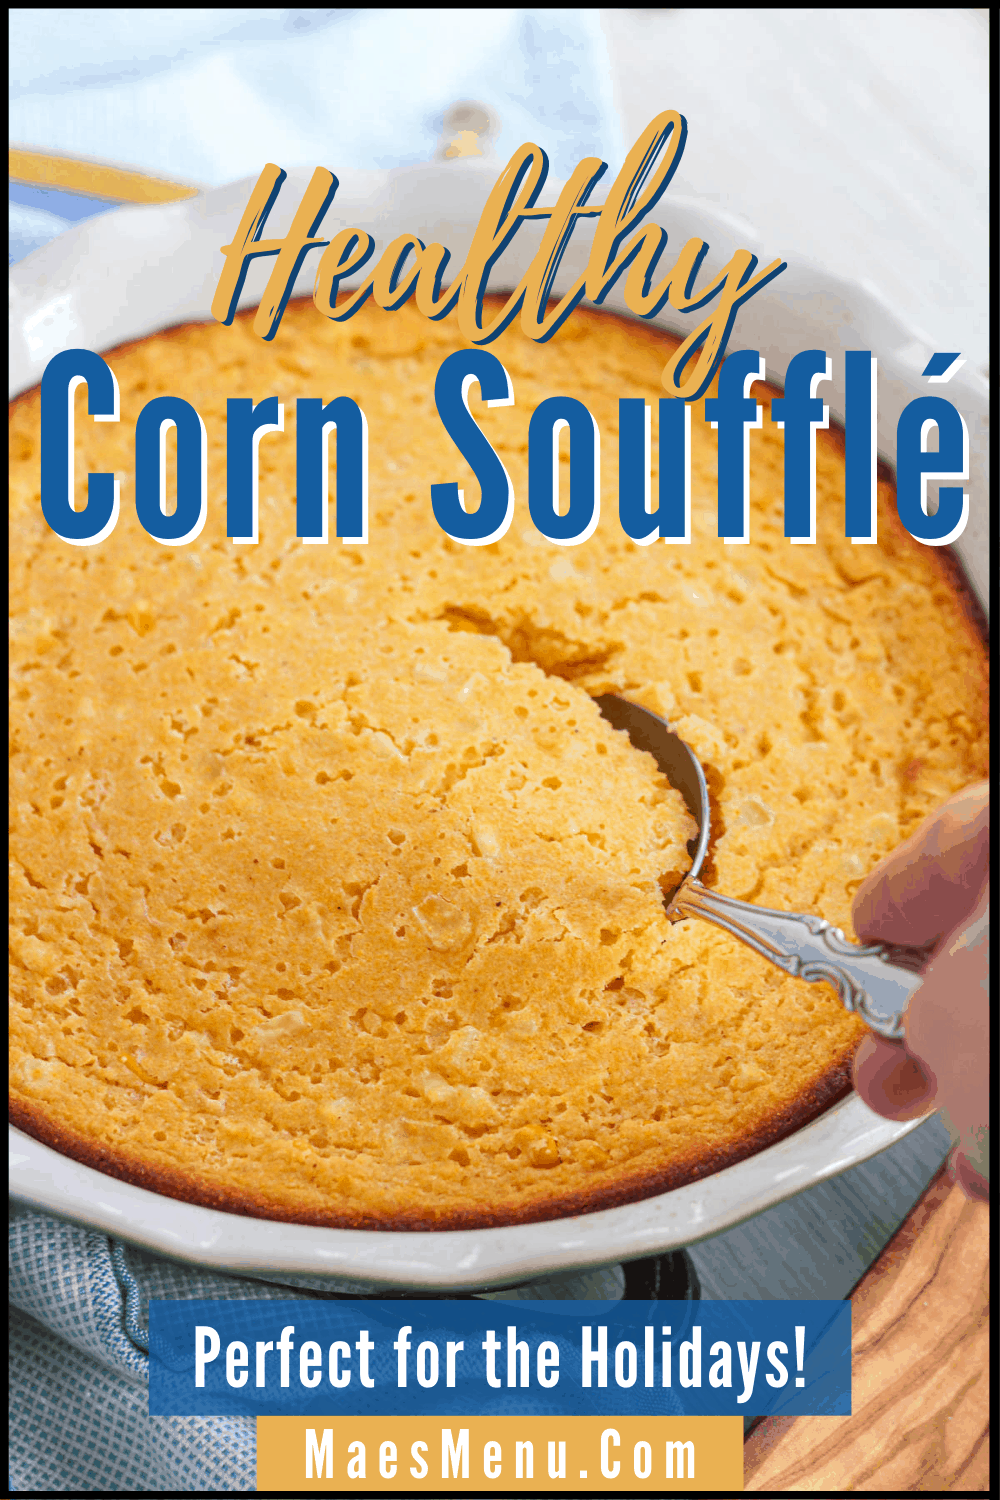 A pin for healthy corn souffle with a hand scopping into the baking pan of the souffle. on the bottom of the pin reads